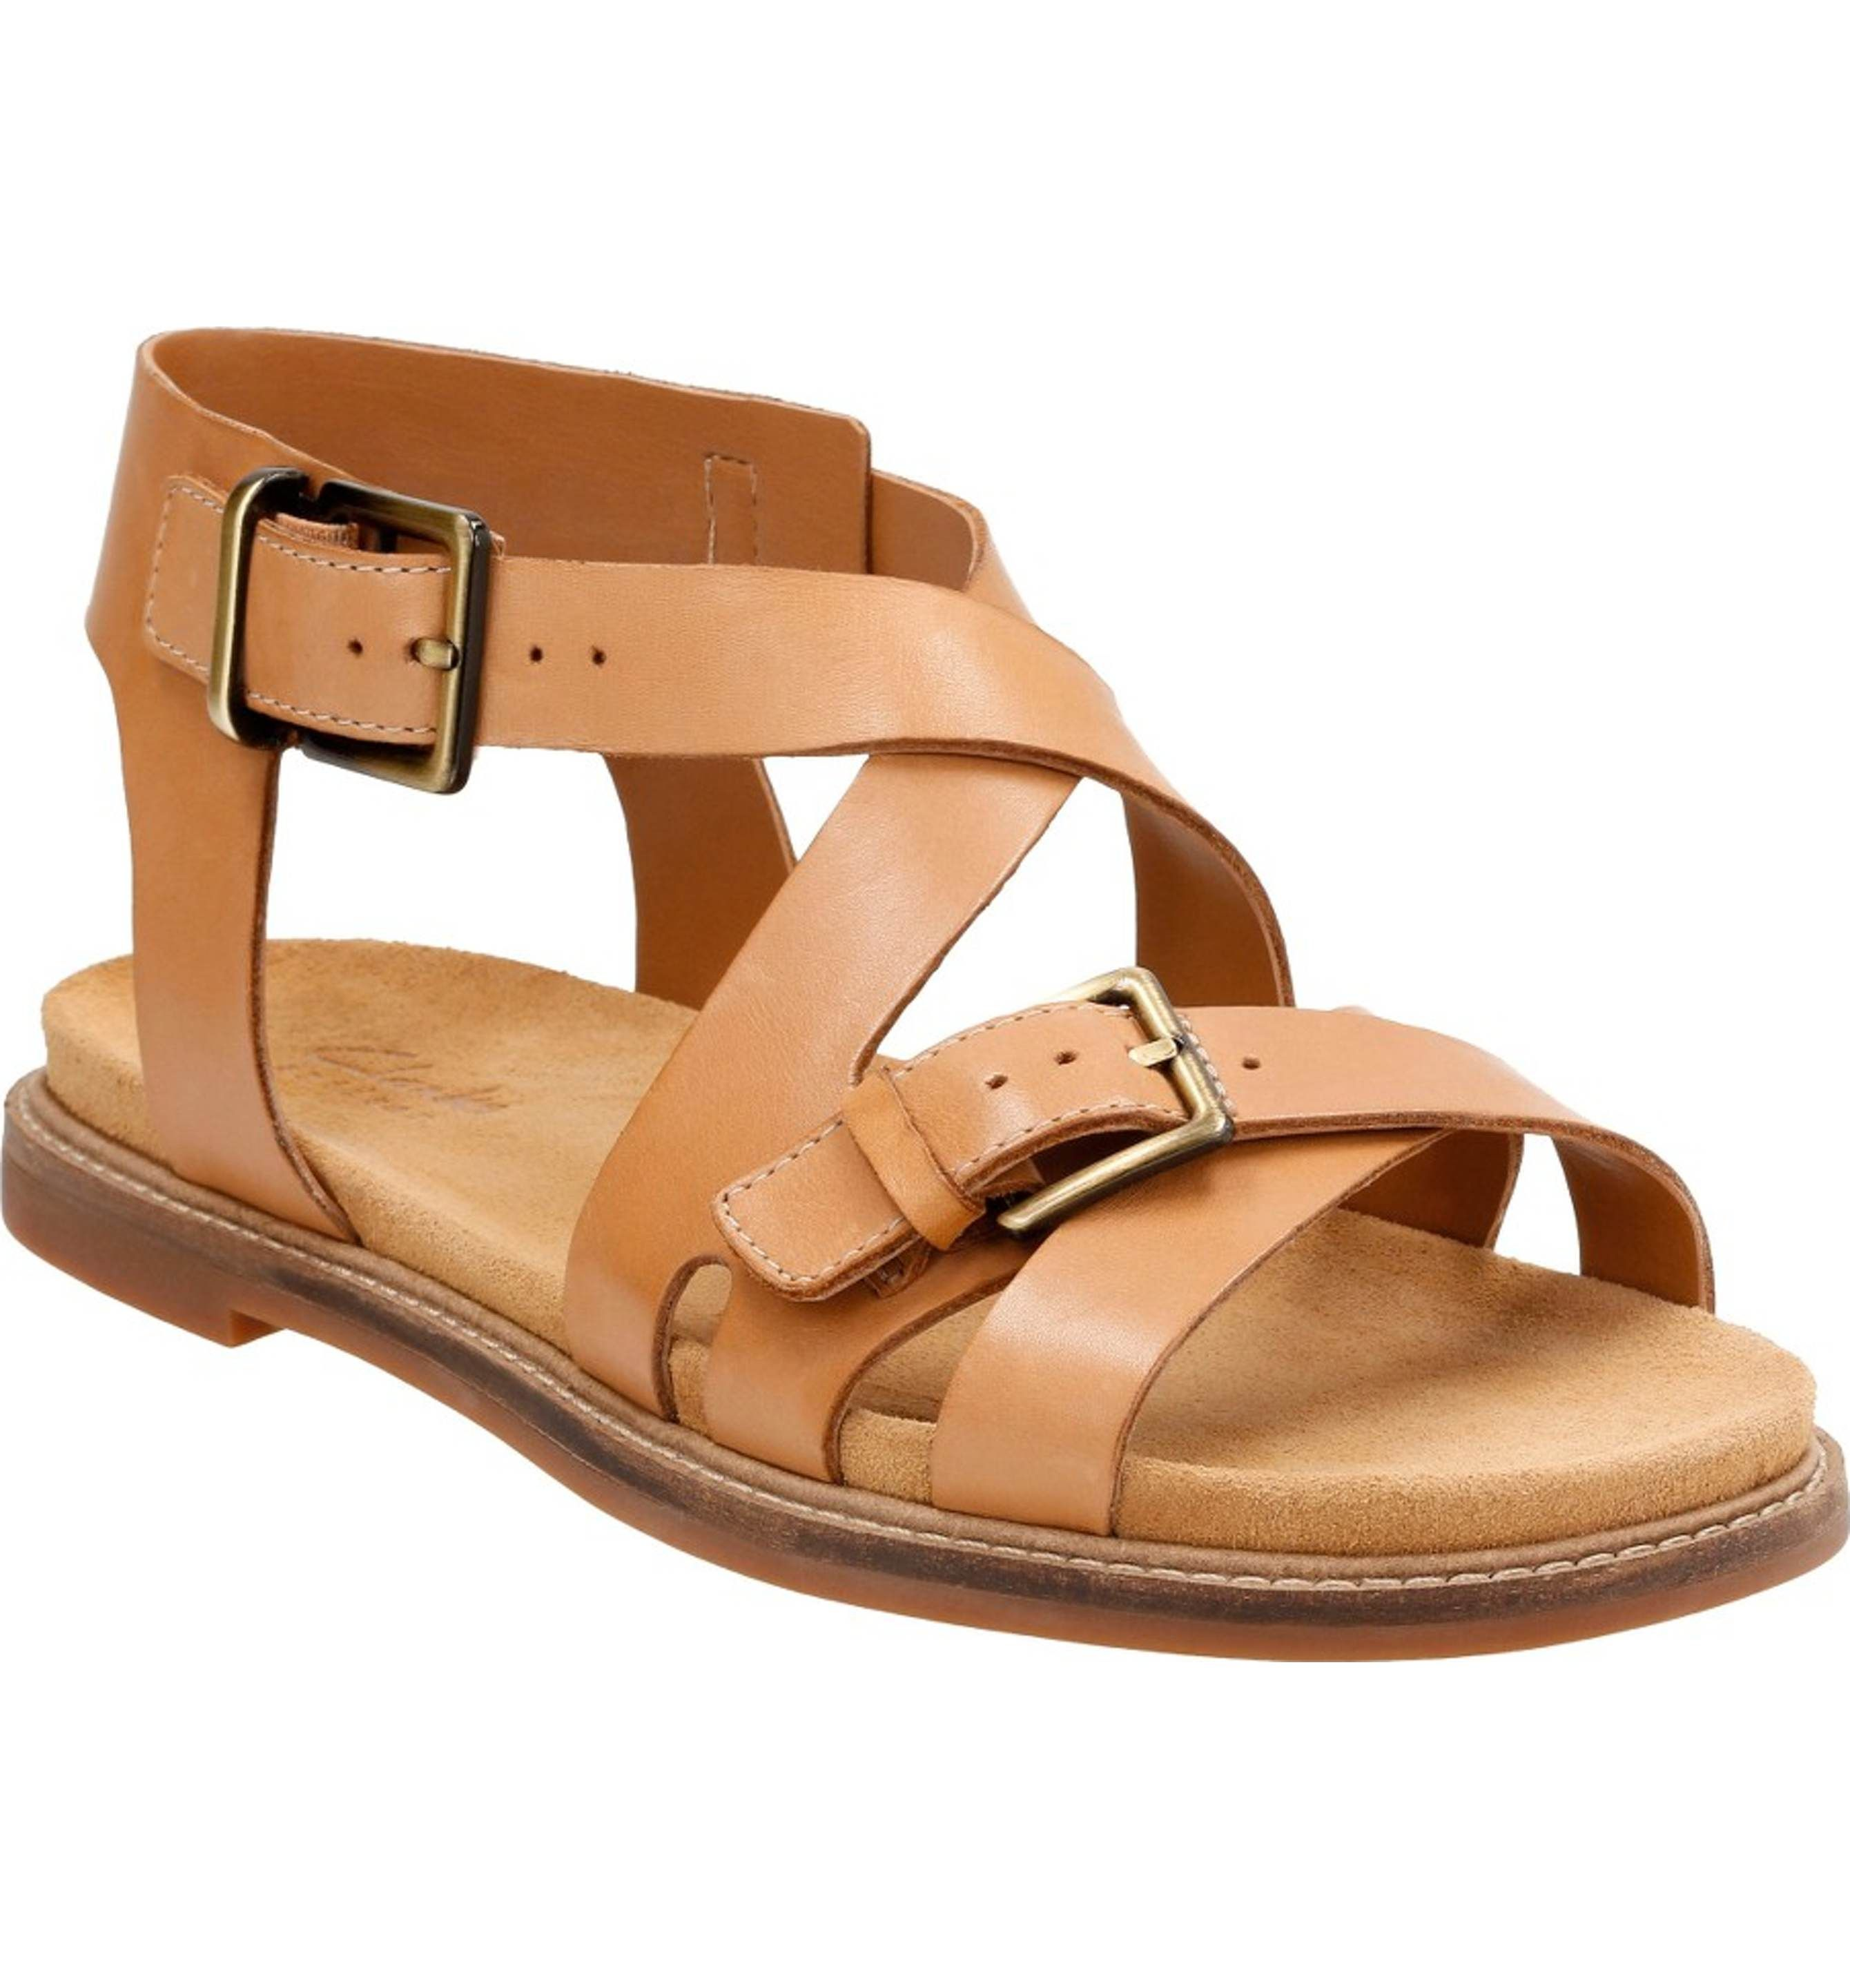 Cheap Clarks Corsio Bambi Leather Black Leather Sandals for Women Outlet